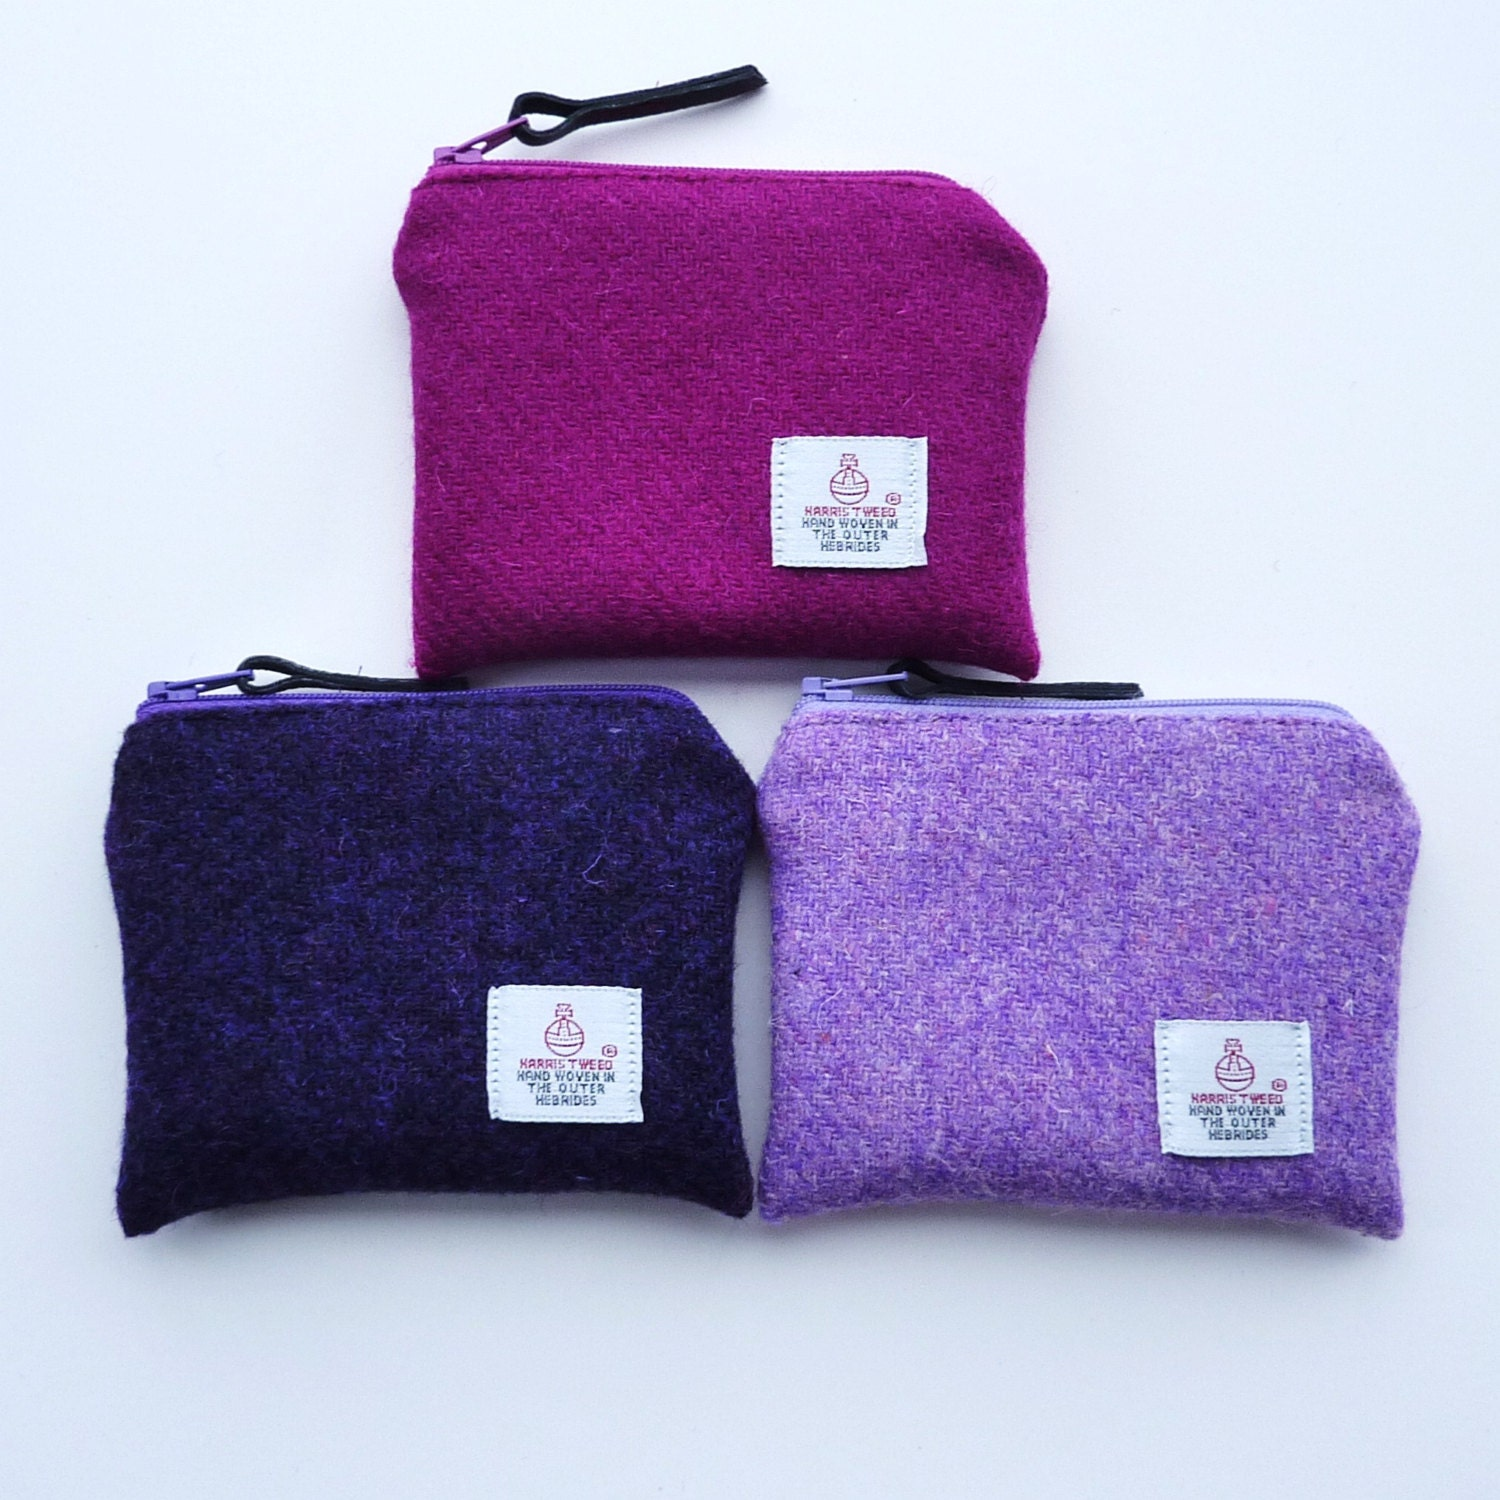 HARRIS TWEED coin purse or wristlet pink  lilac  purple  owl lining